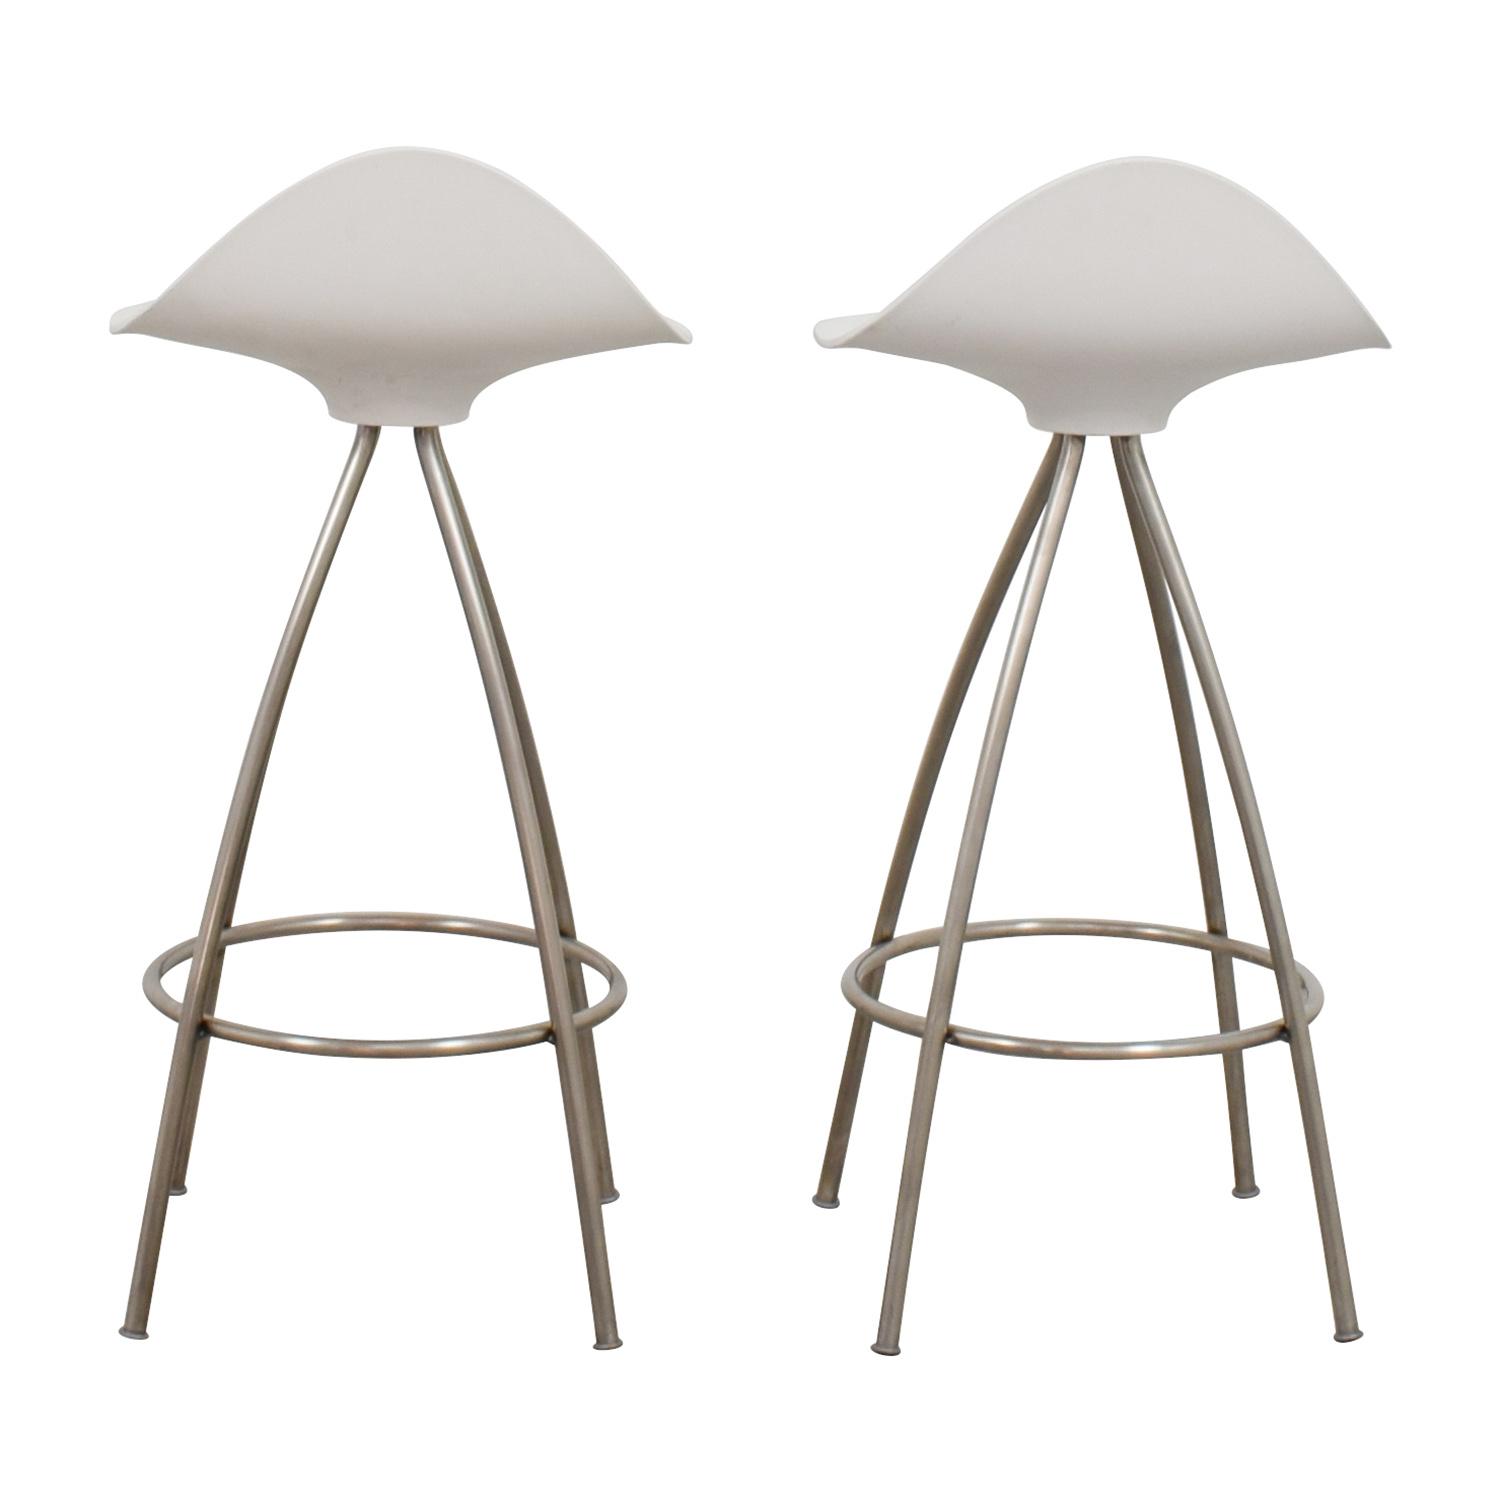 100 barstools nyc bar stools rochester henrietta monroe county new york bar stool bar - Onda counter stool ...